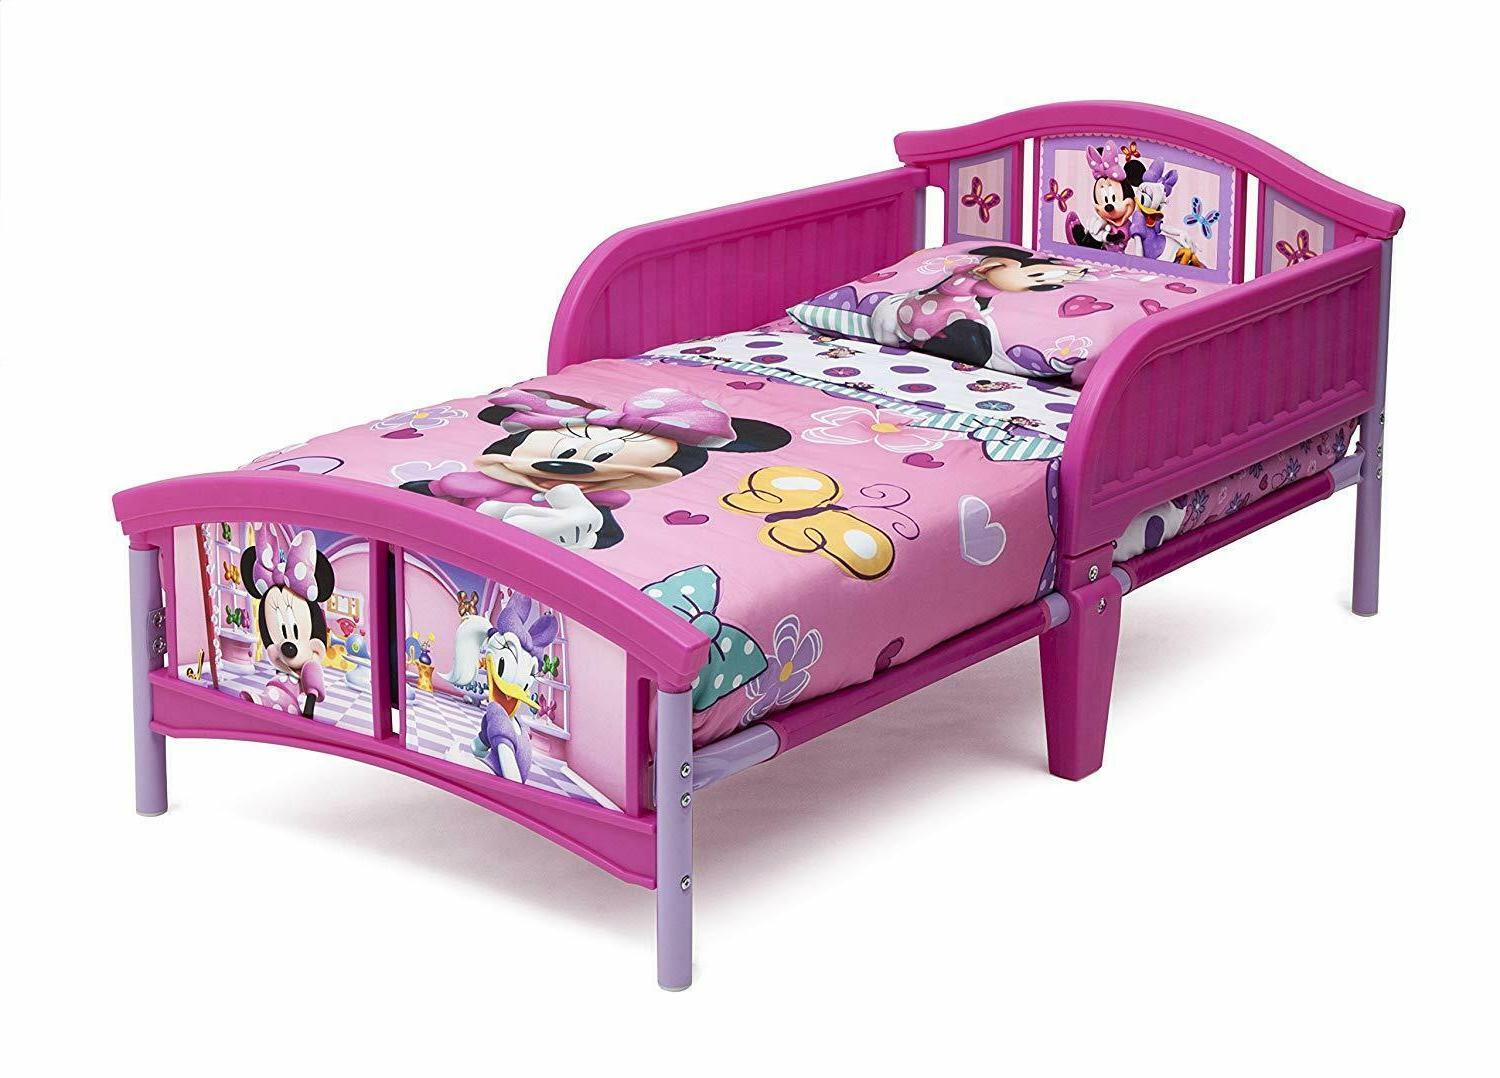 plastic toddler bed pink